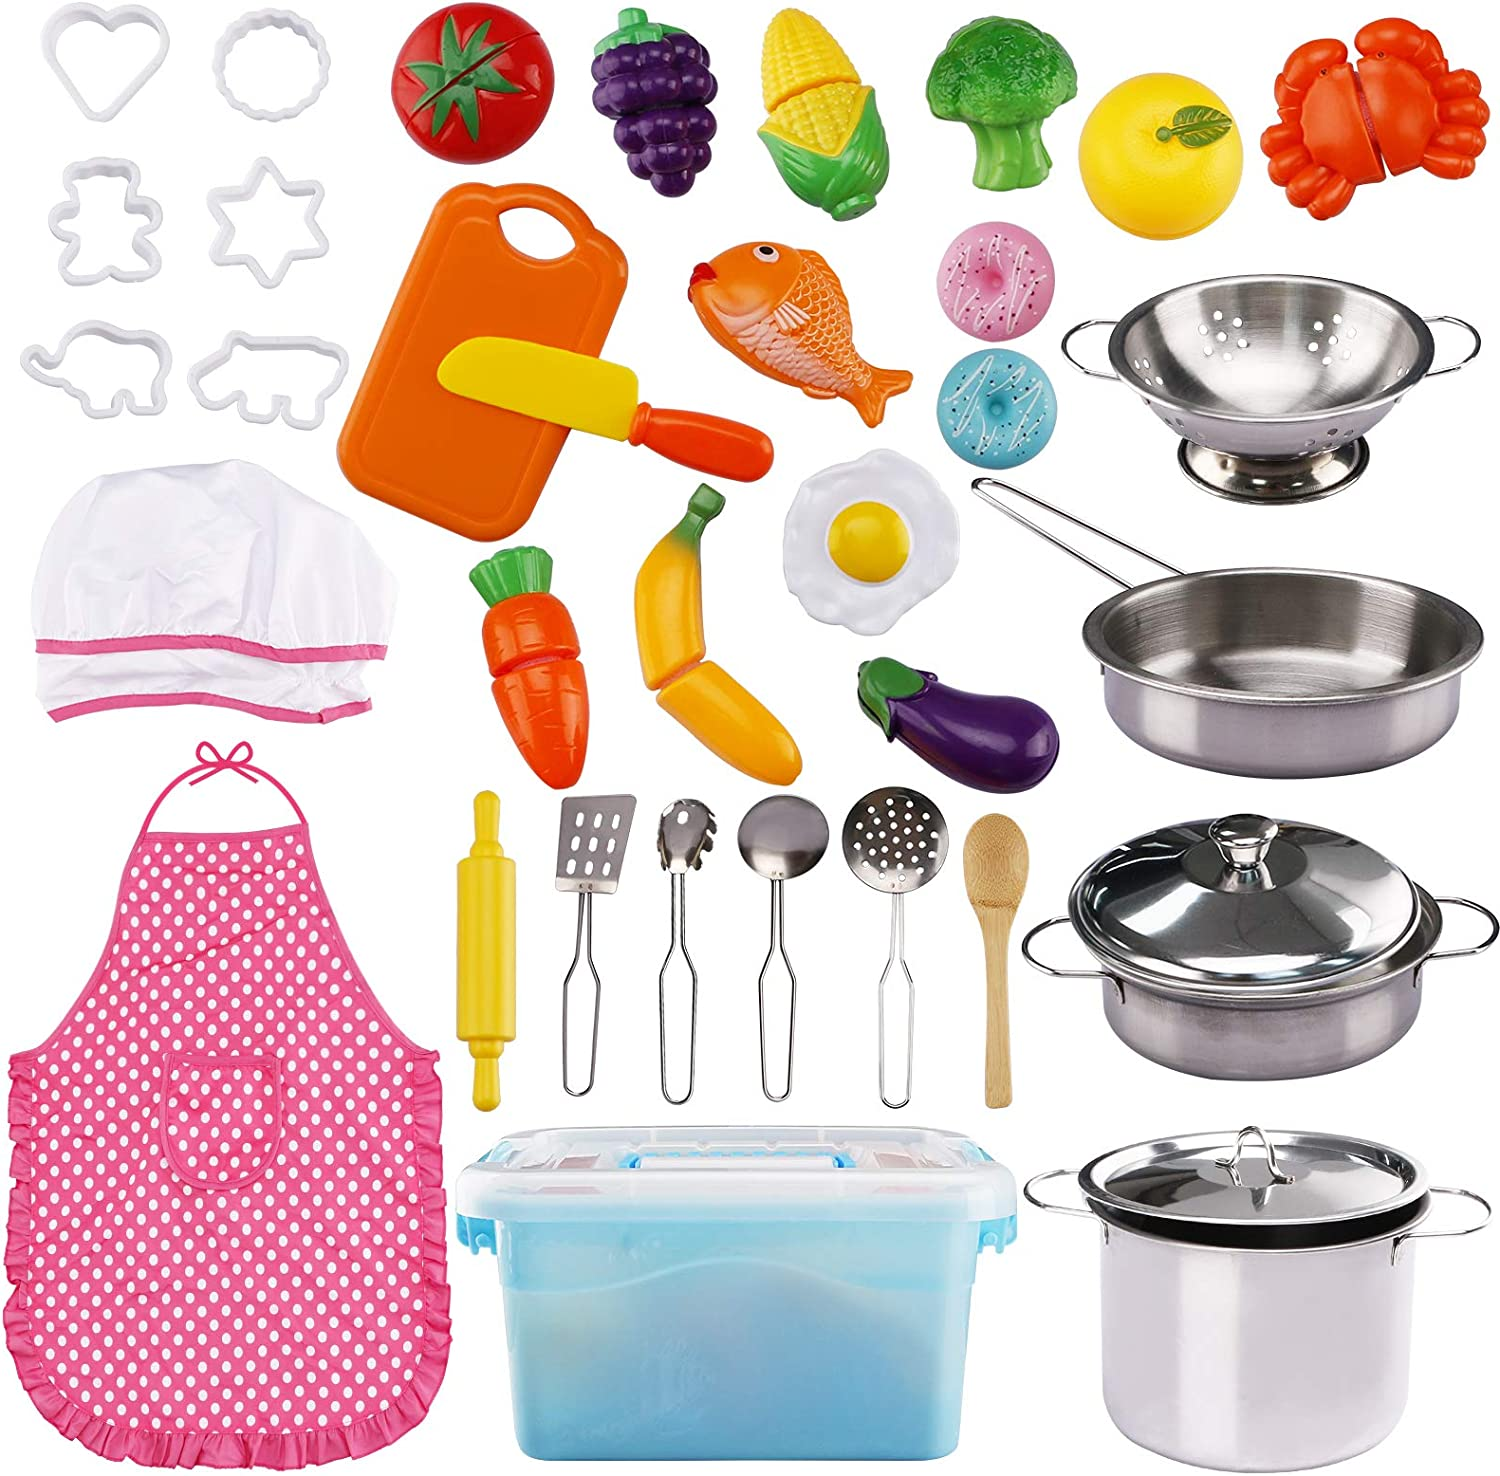 37 Pieces Pretend Play Toy Kitchen Cooking & Baking with Stainless Steel Cookware Pots & Pans Set, Cooking Utensils Cookie Cutters Cutting Vegetables Apron & Chef Hat for Boys Girls Over 12 Years Old